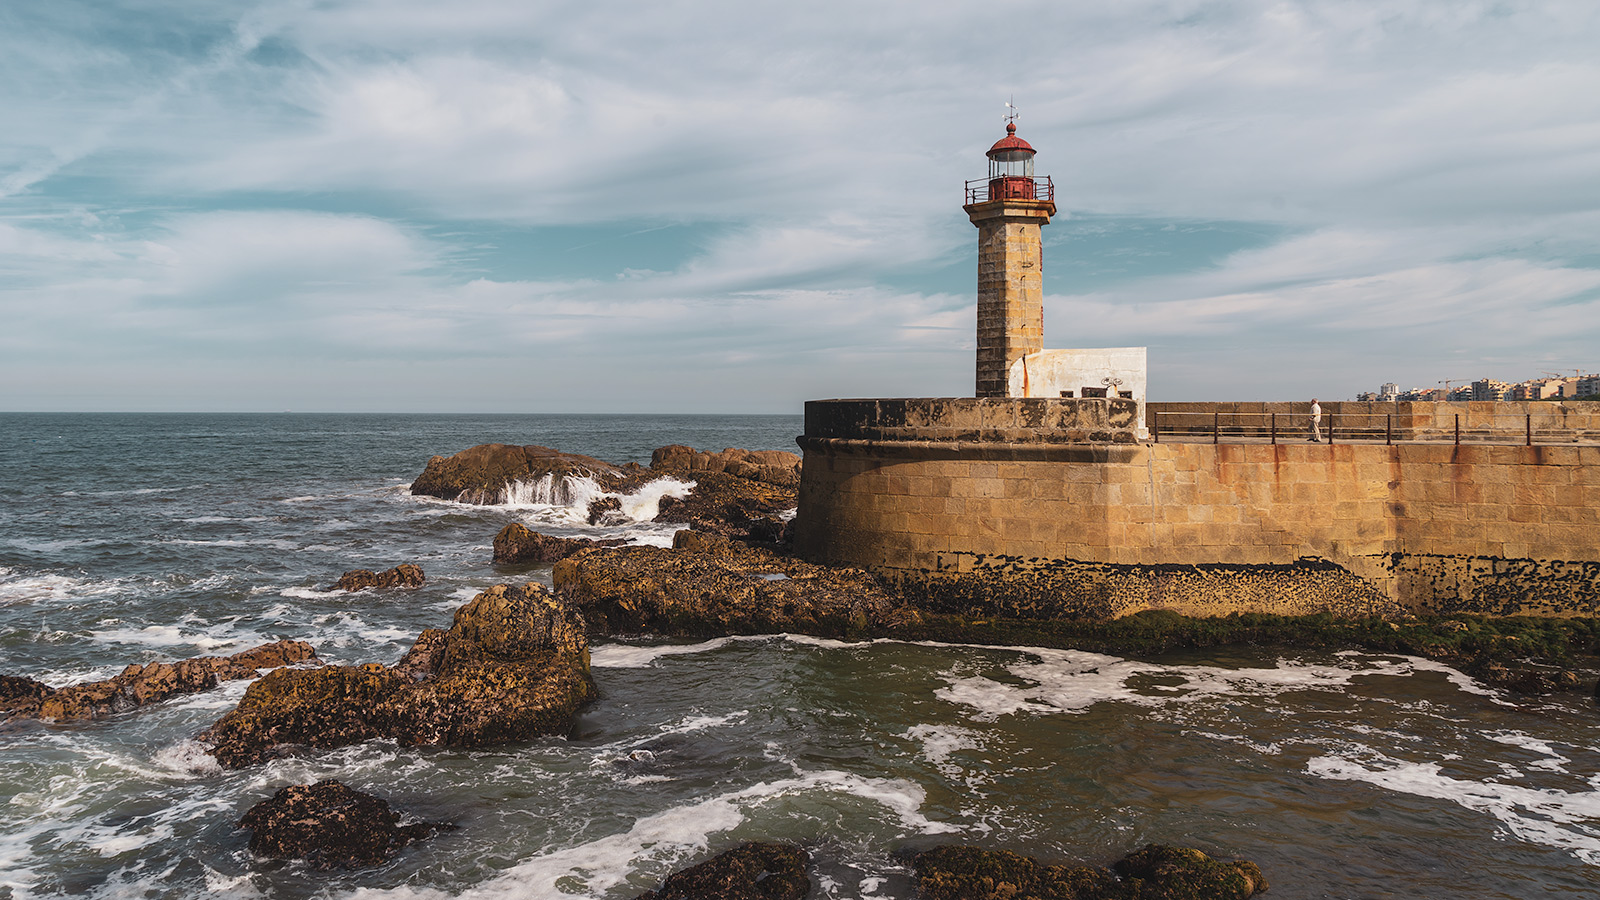 Felgueiras Lighthouse at Foz do Porto, Portugal